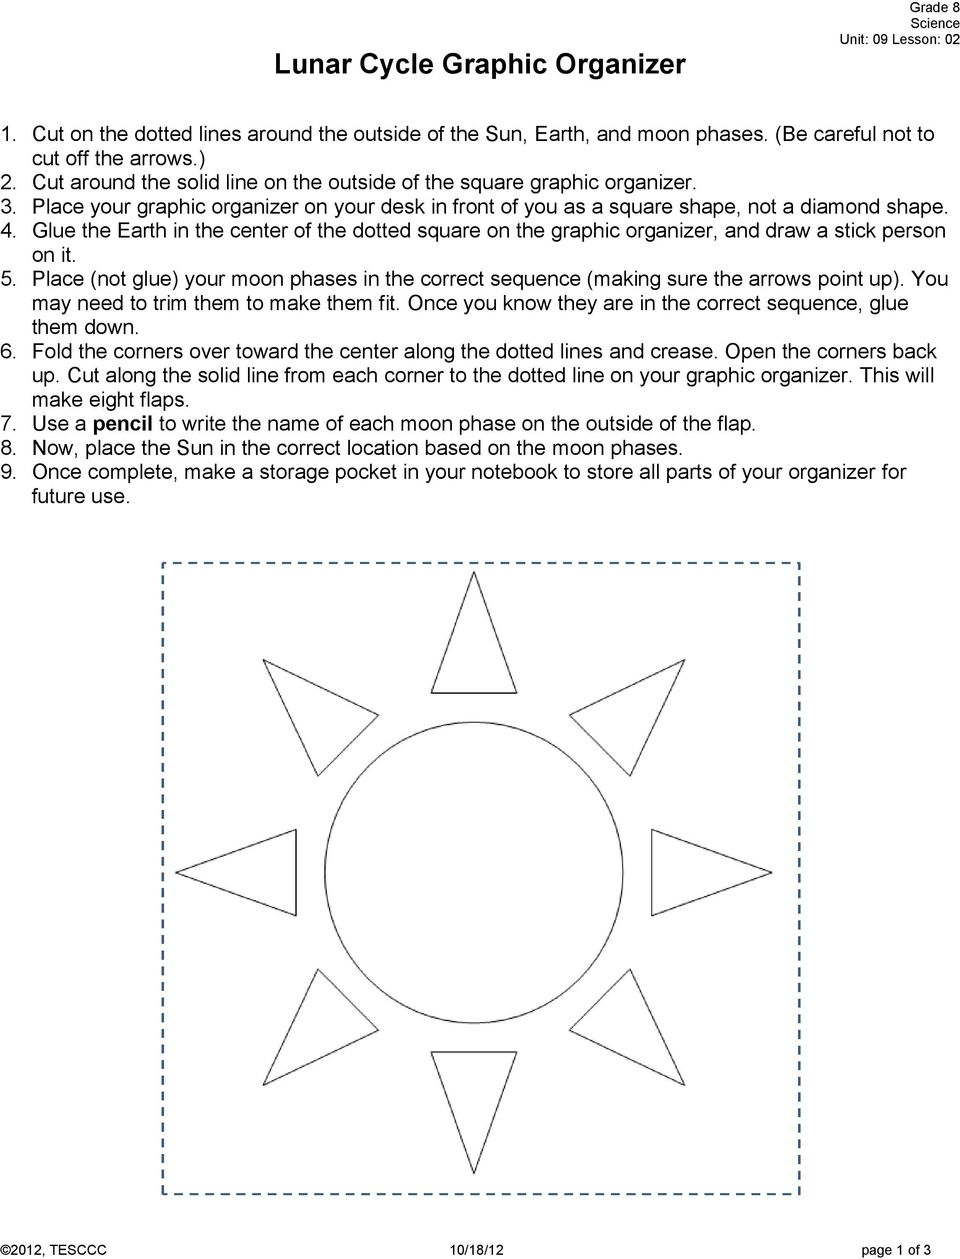 Science Grade 08 Unit 09 Exemplar Lesson 02 Phases And Eclipses Pdf Moon Diagram Phase Glue The Earth In Center Of Dotted Square On Graphic Organizer